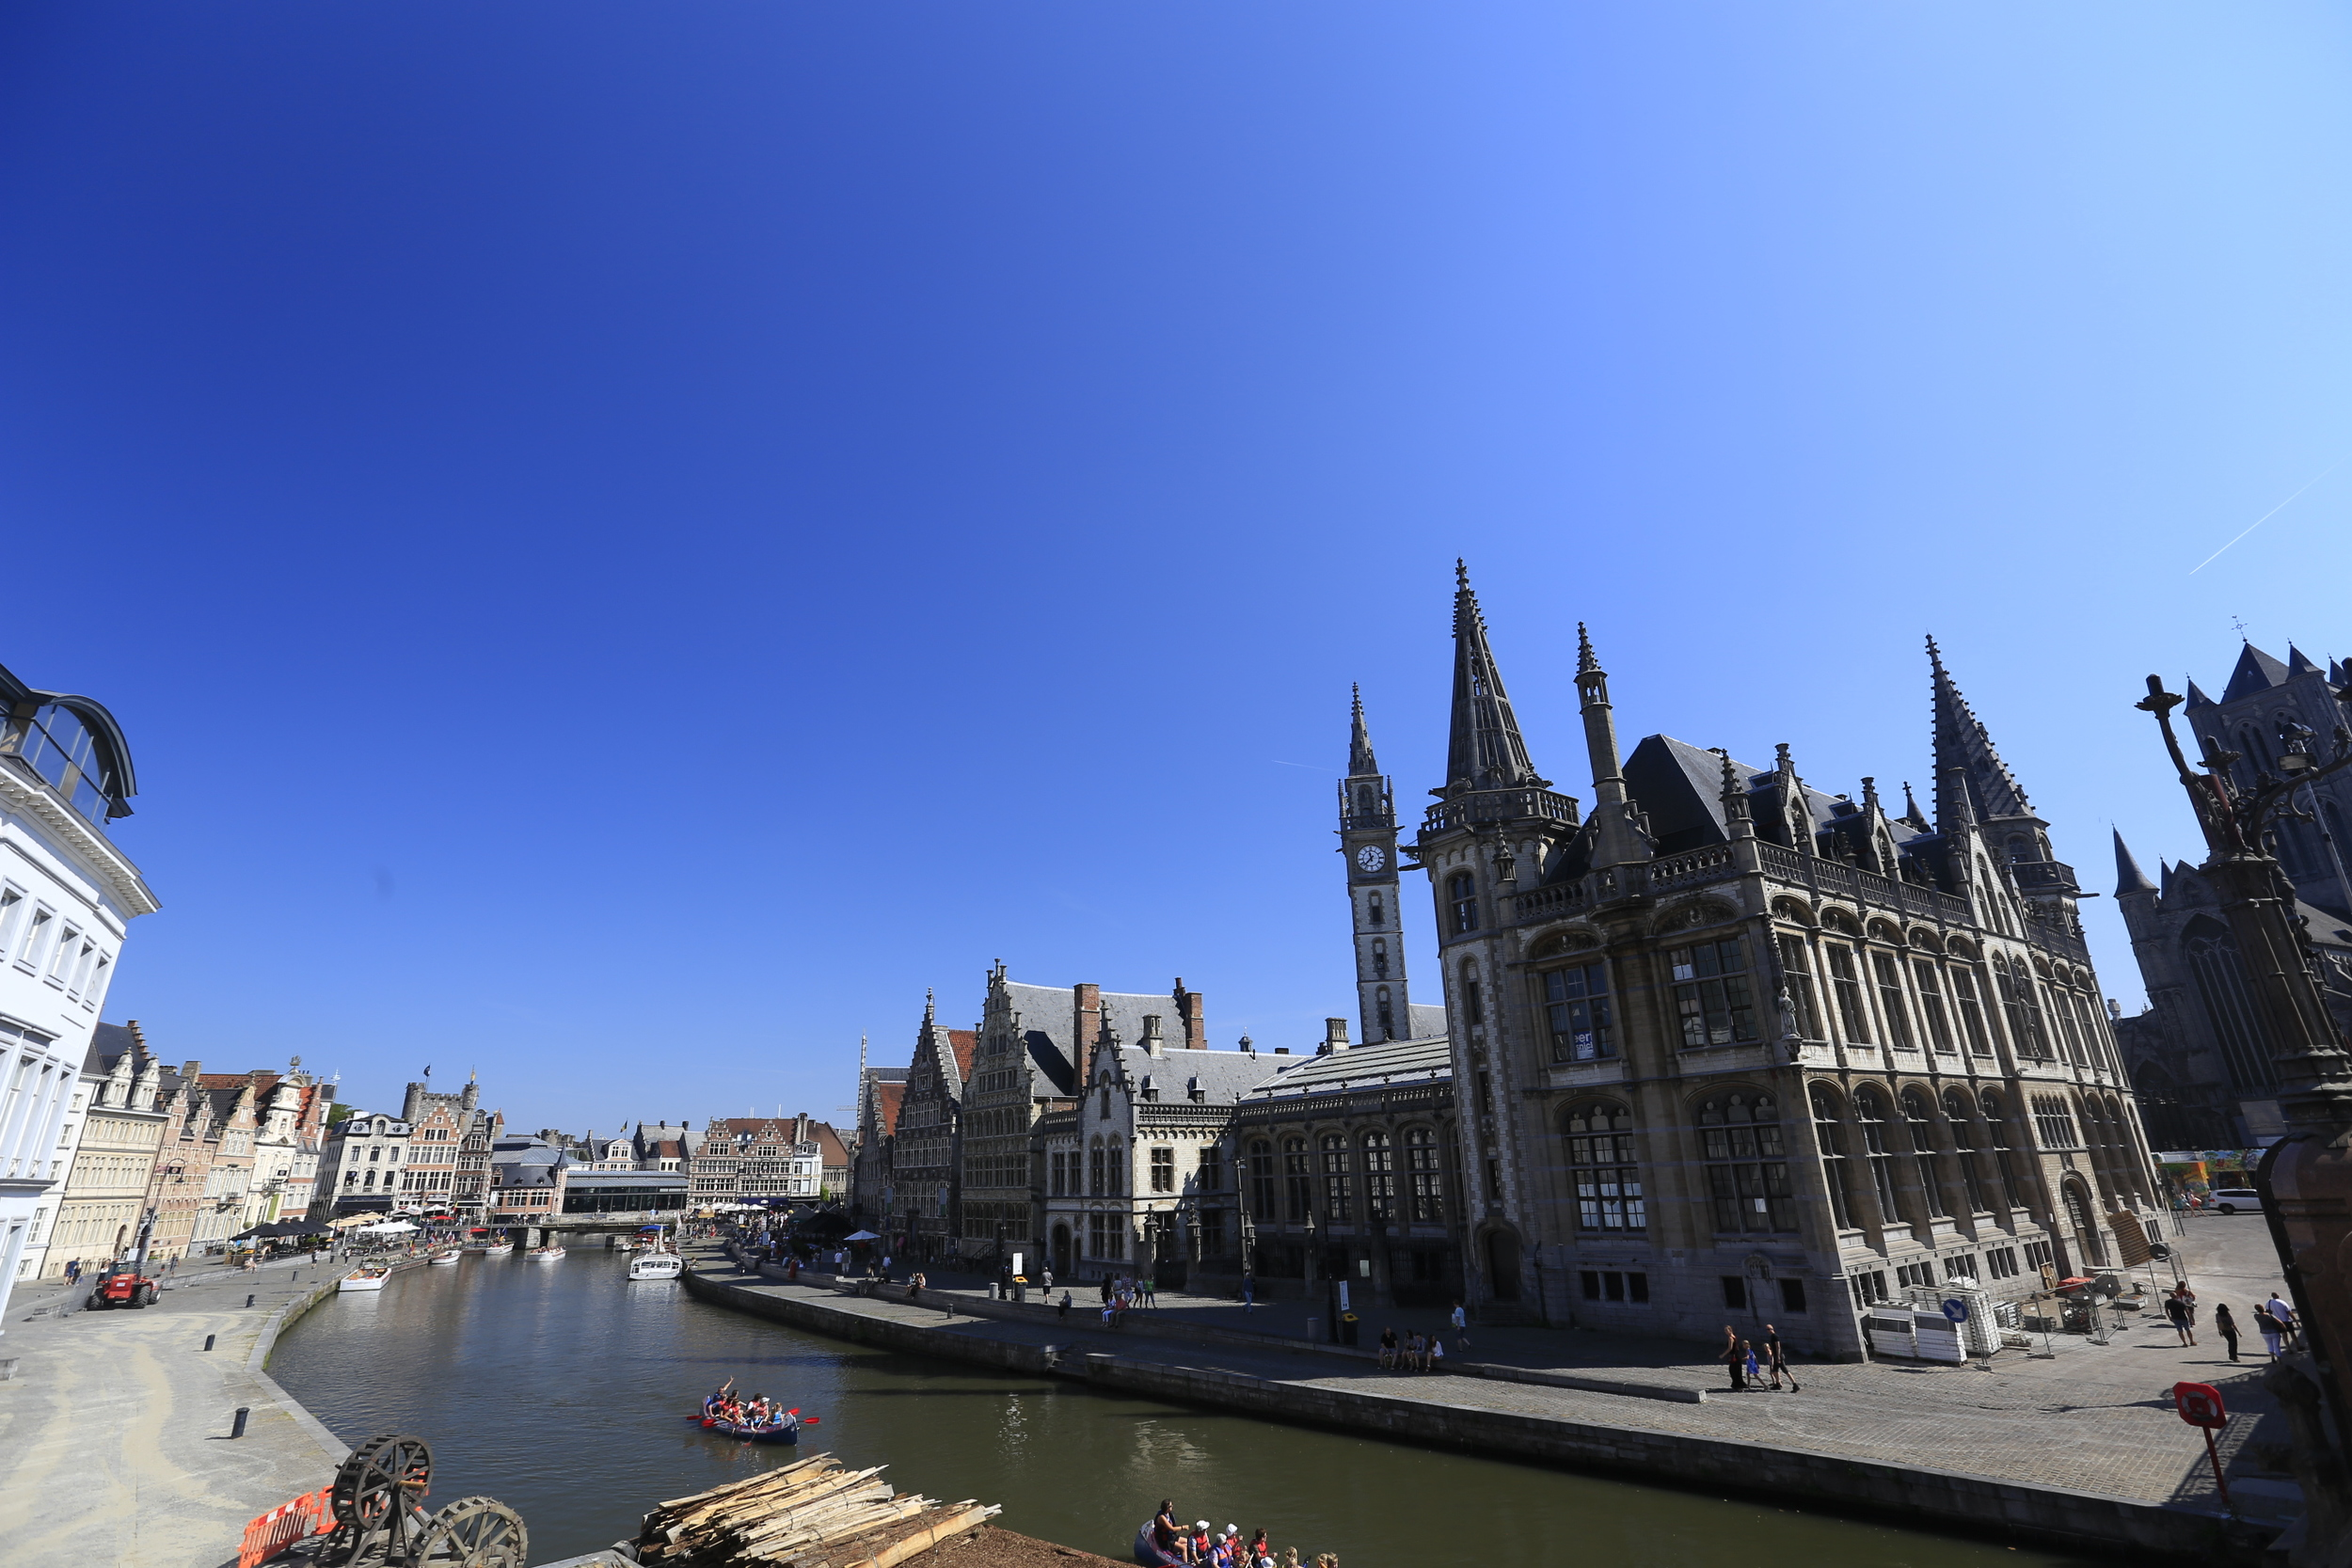 ghent, medieval architecture, canon, canon 16-35mm, 16-35mm, 16-35mm 2.8, photography blog, cycling blog, bikepacking blog, travel photography,